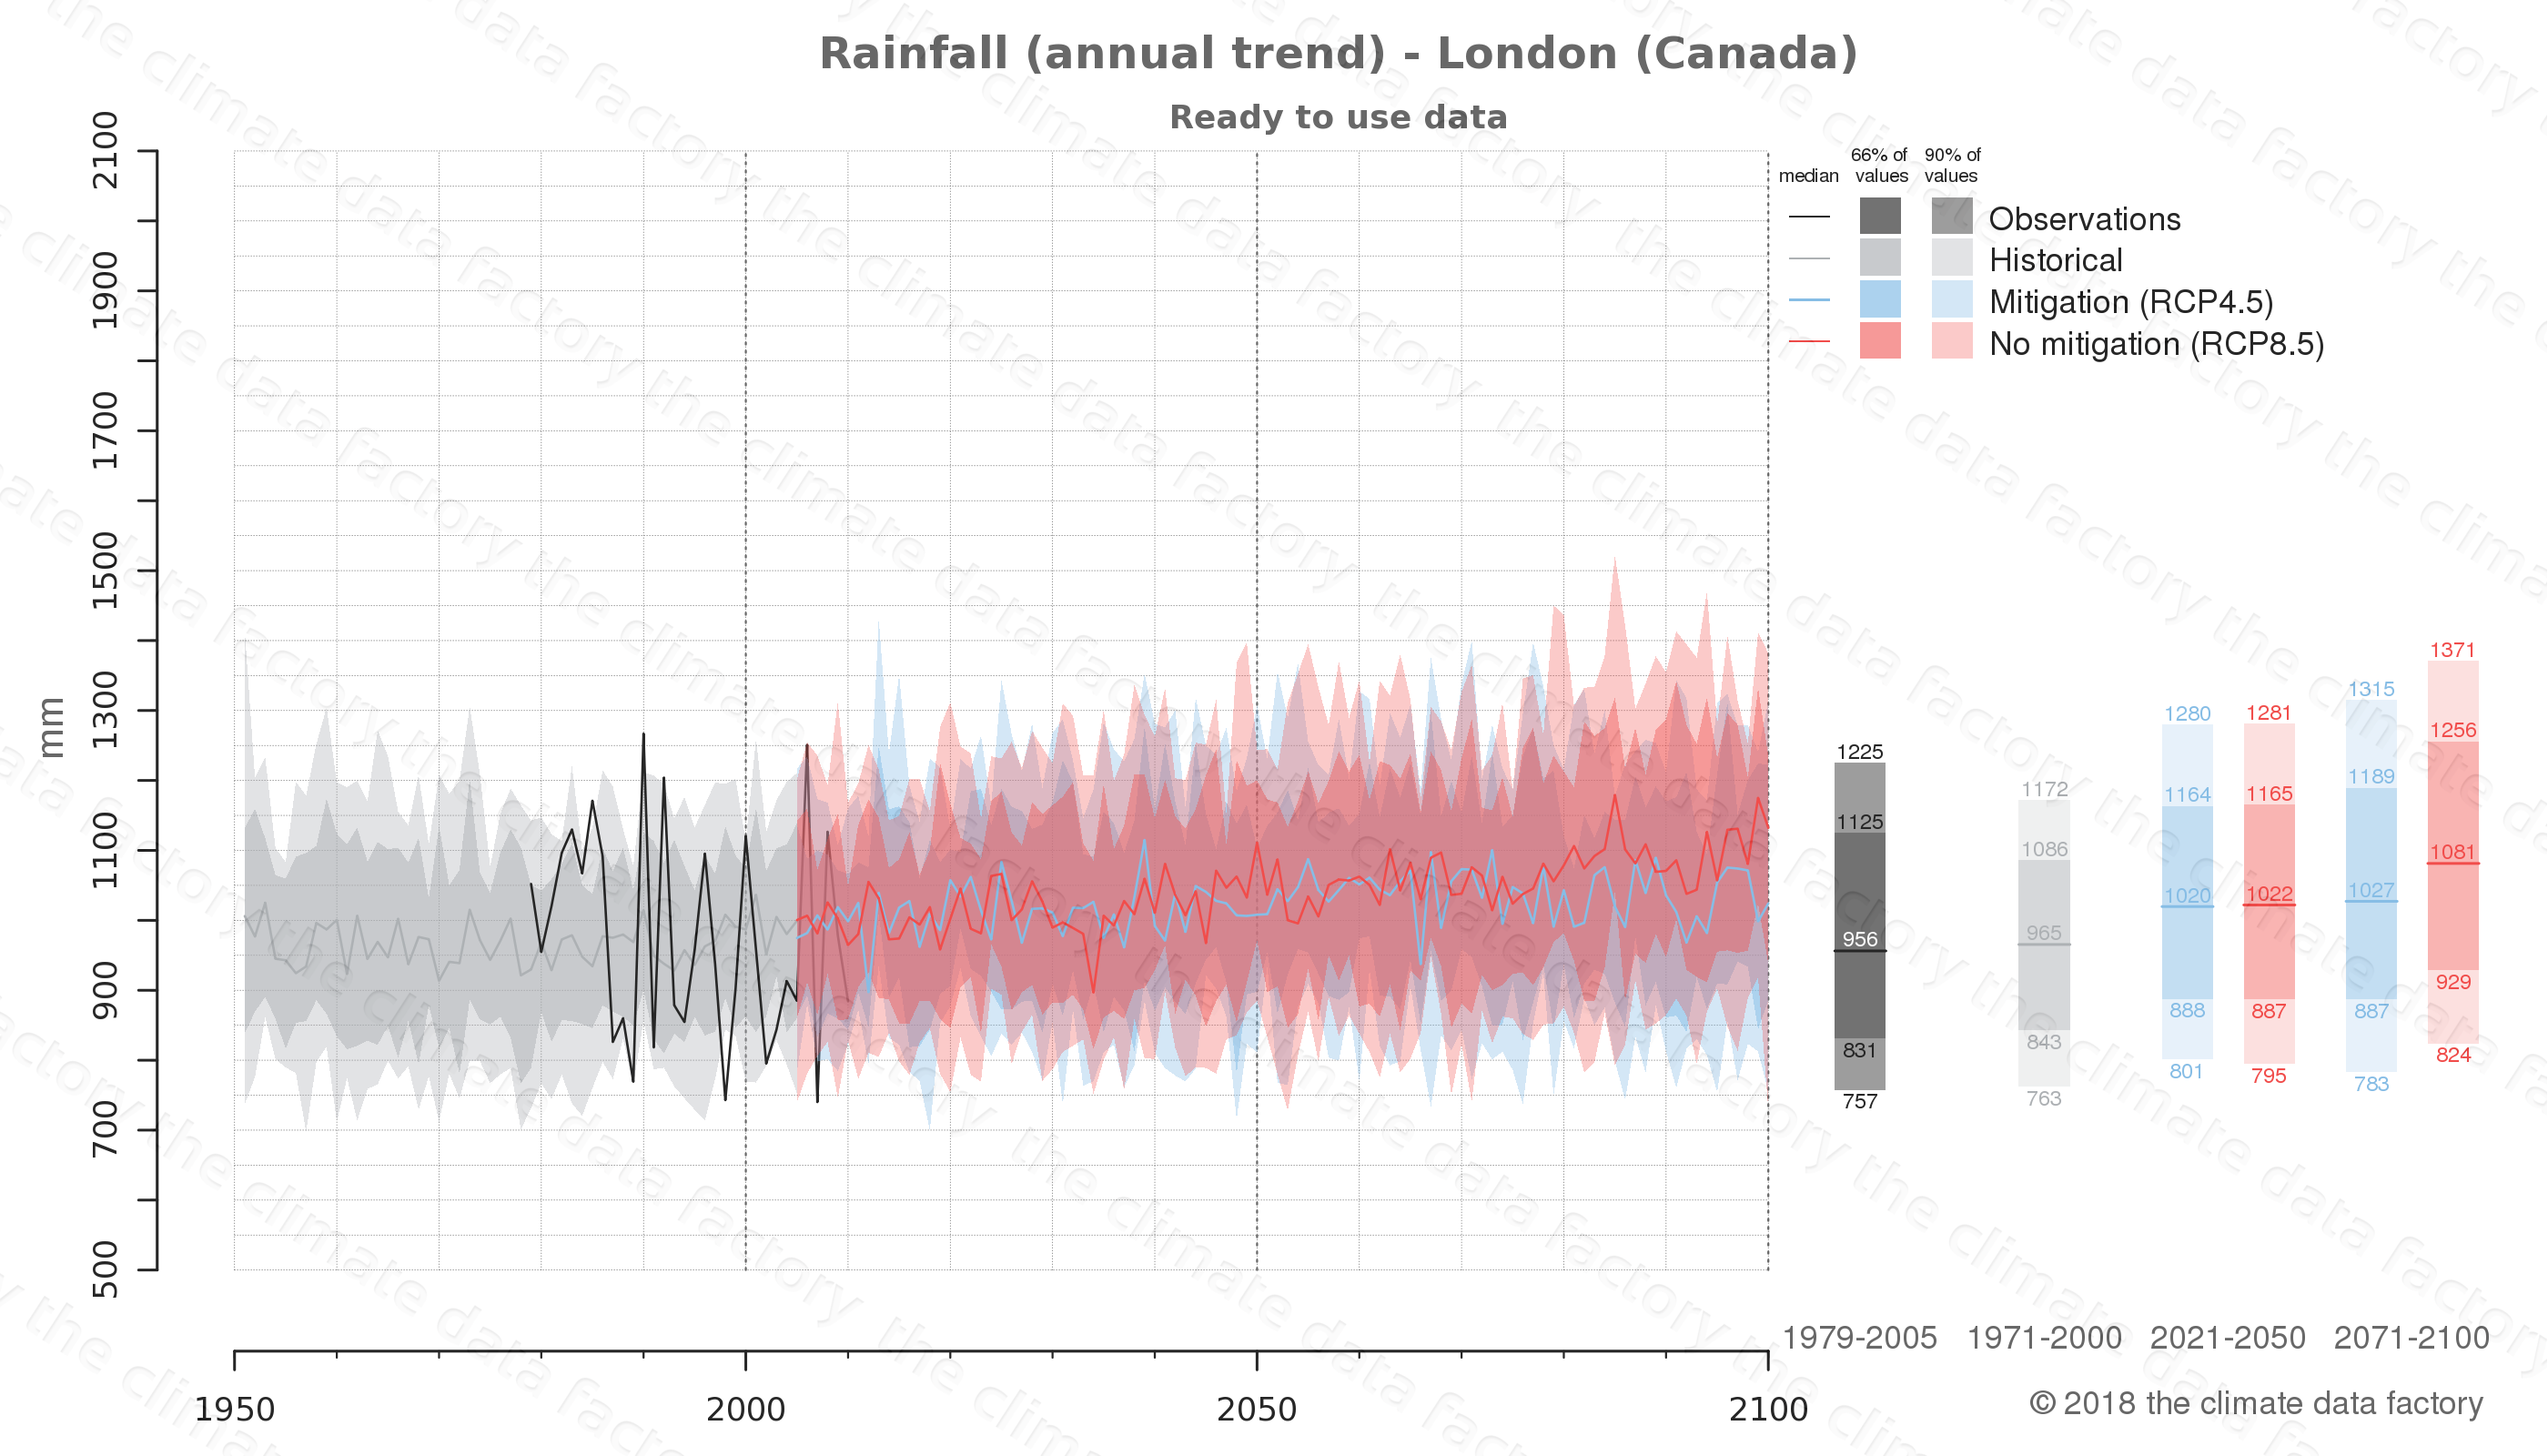 climate change data policy adaptation climate graph city data rainfall london canada